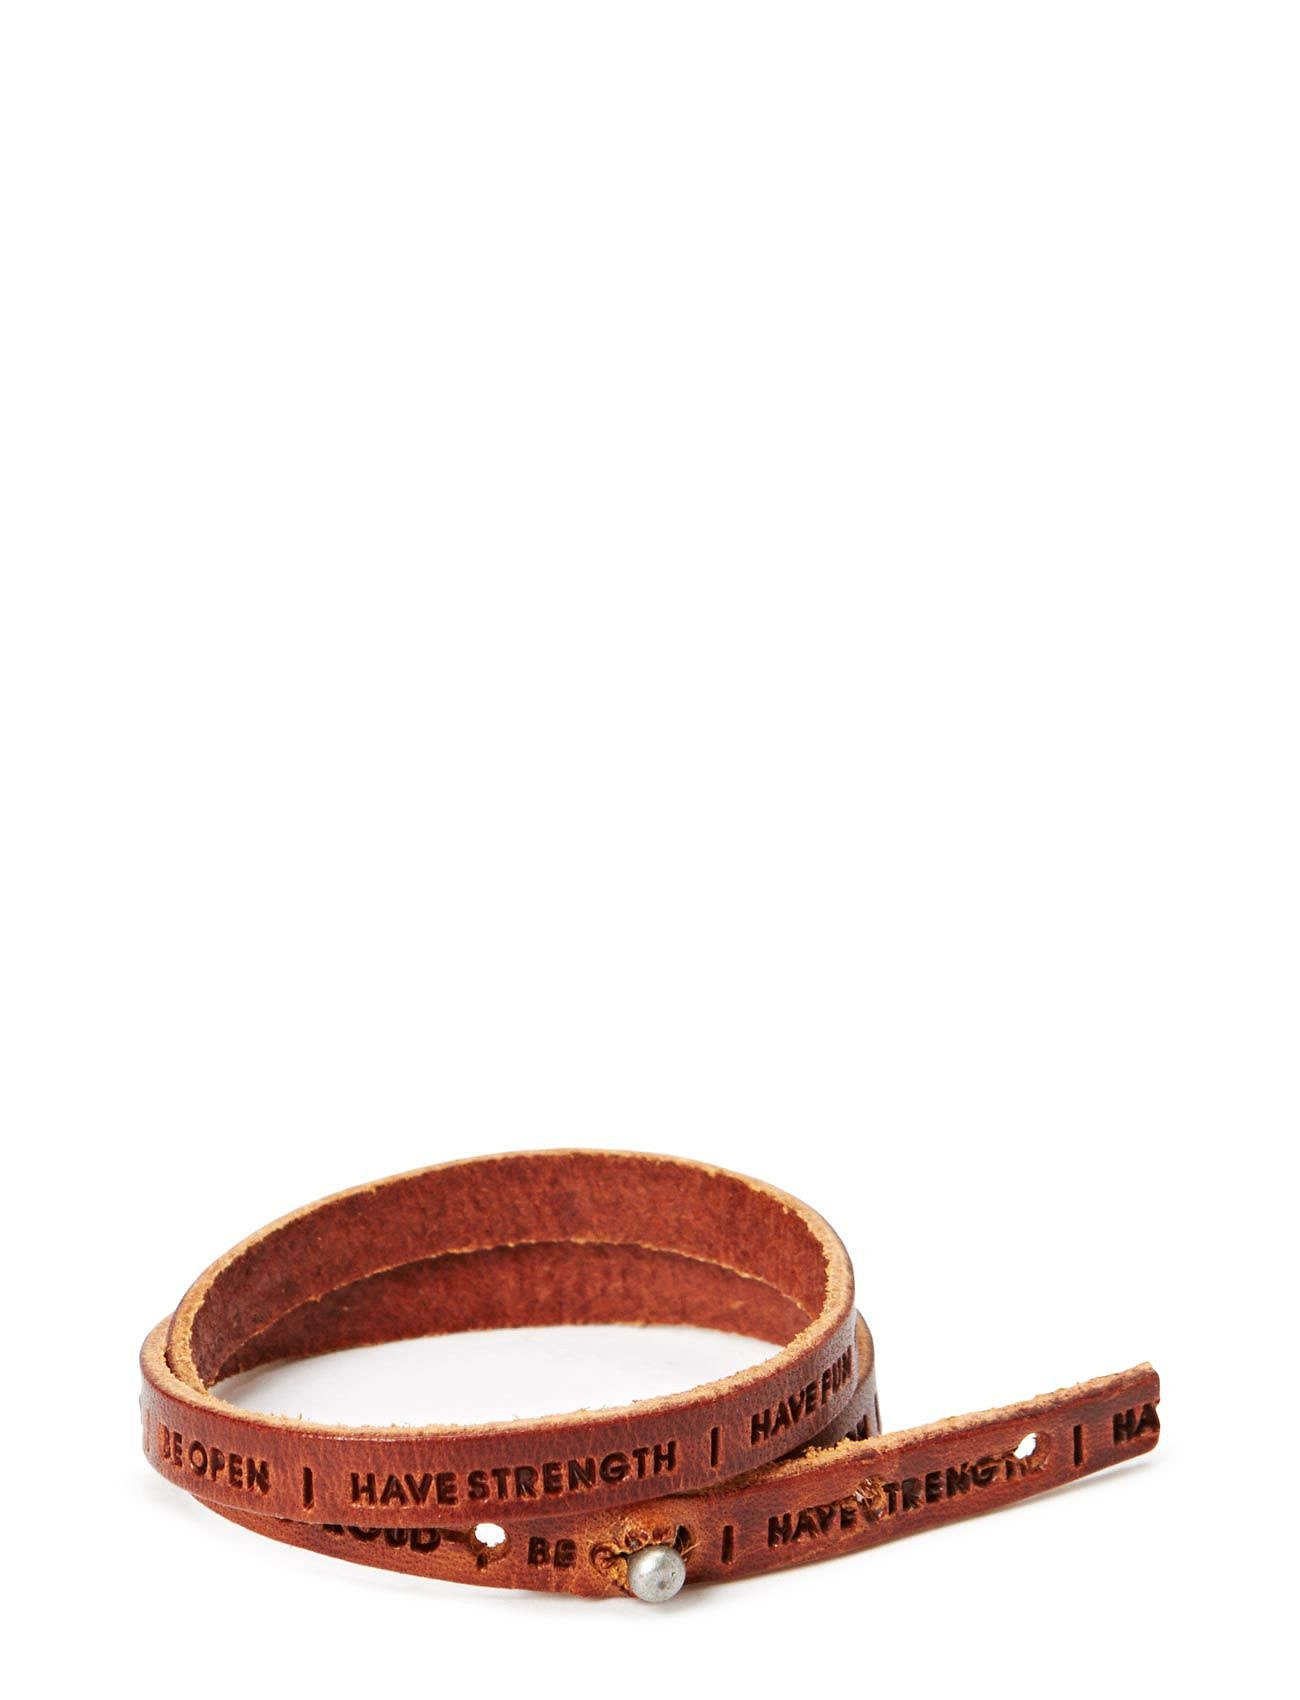 Royal RepubliQ Philosophy Bracelet - COGNAC